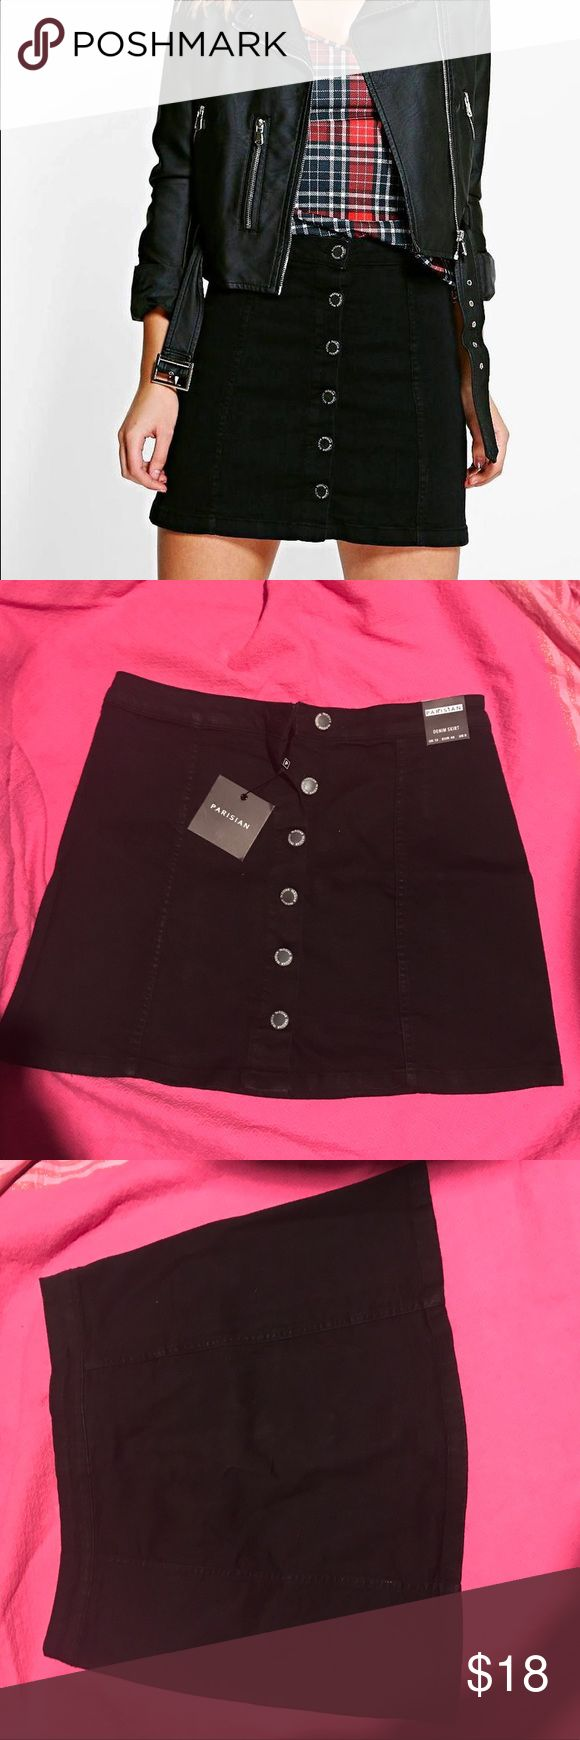 Boohoo Jessica Black Skirt Size 8 NWT US size 8, UK Size 12. Great skirt, just doesn't fit me! Boohoo Skirts A-Line or Full